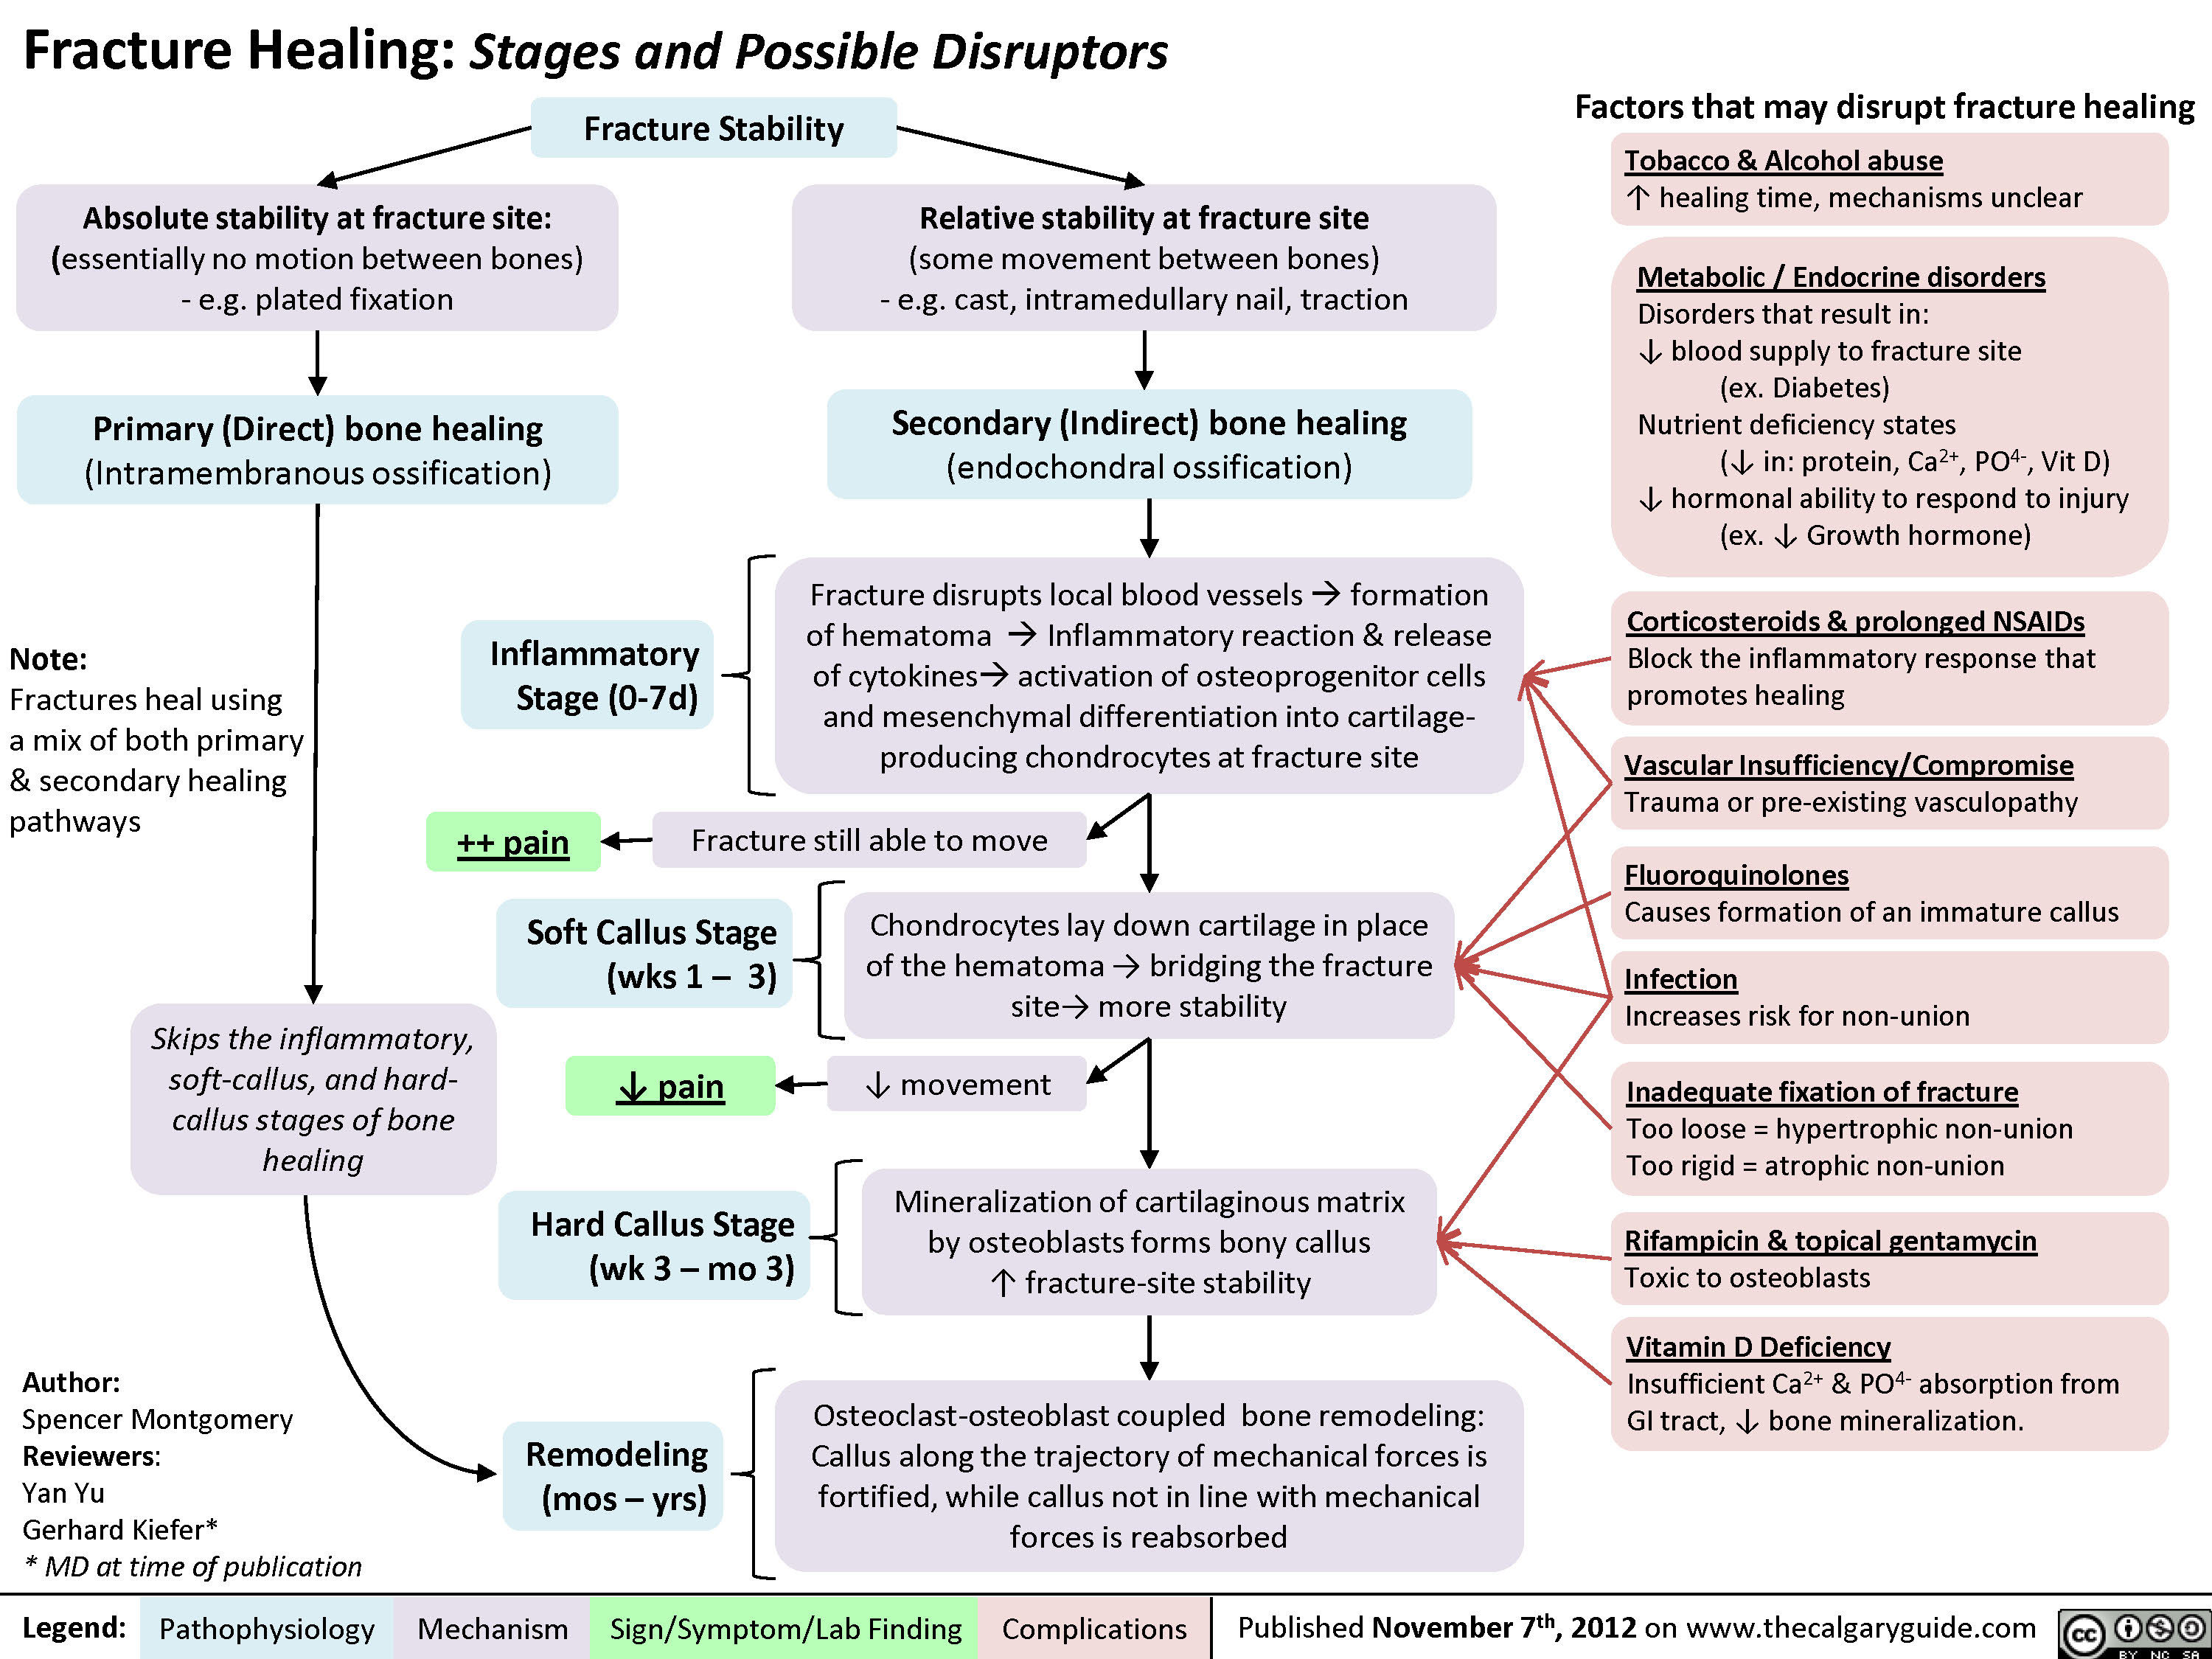 Fracture Healing And Disruptors Of This Process Inflammatory